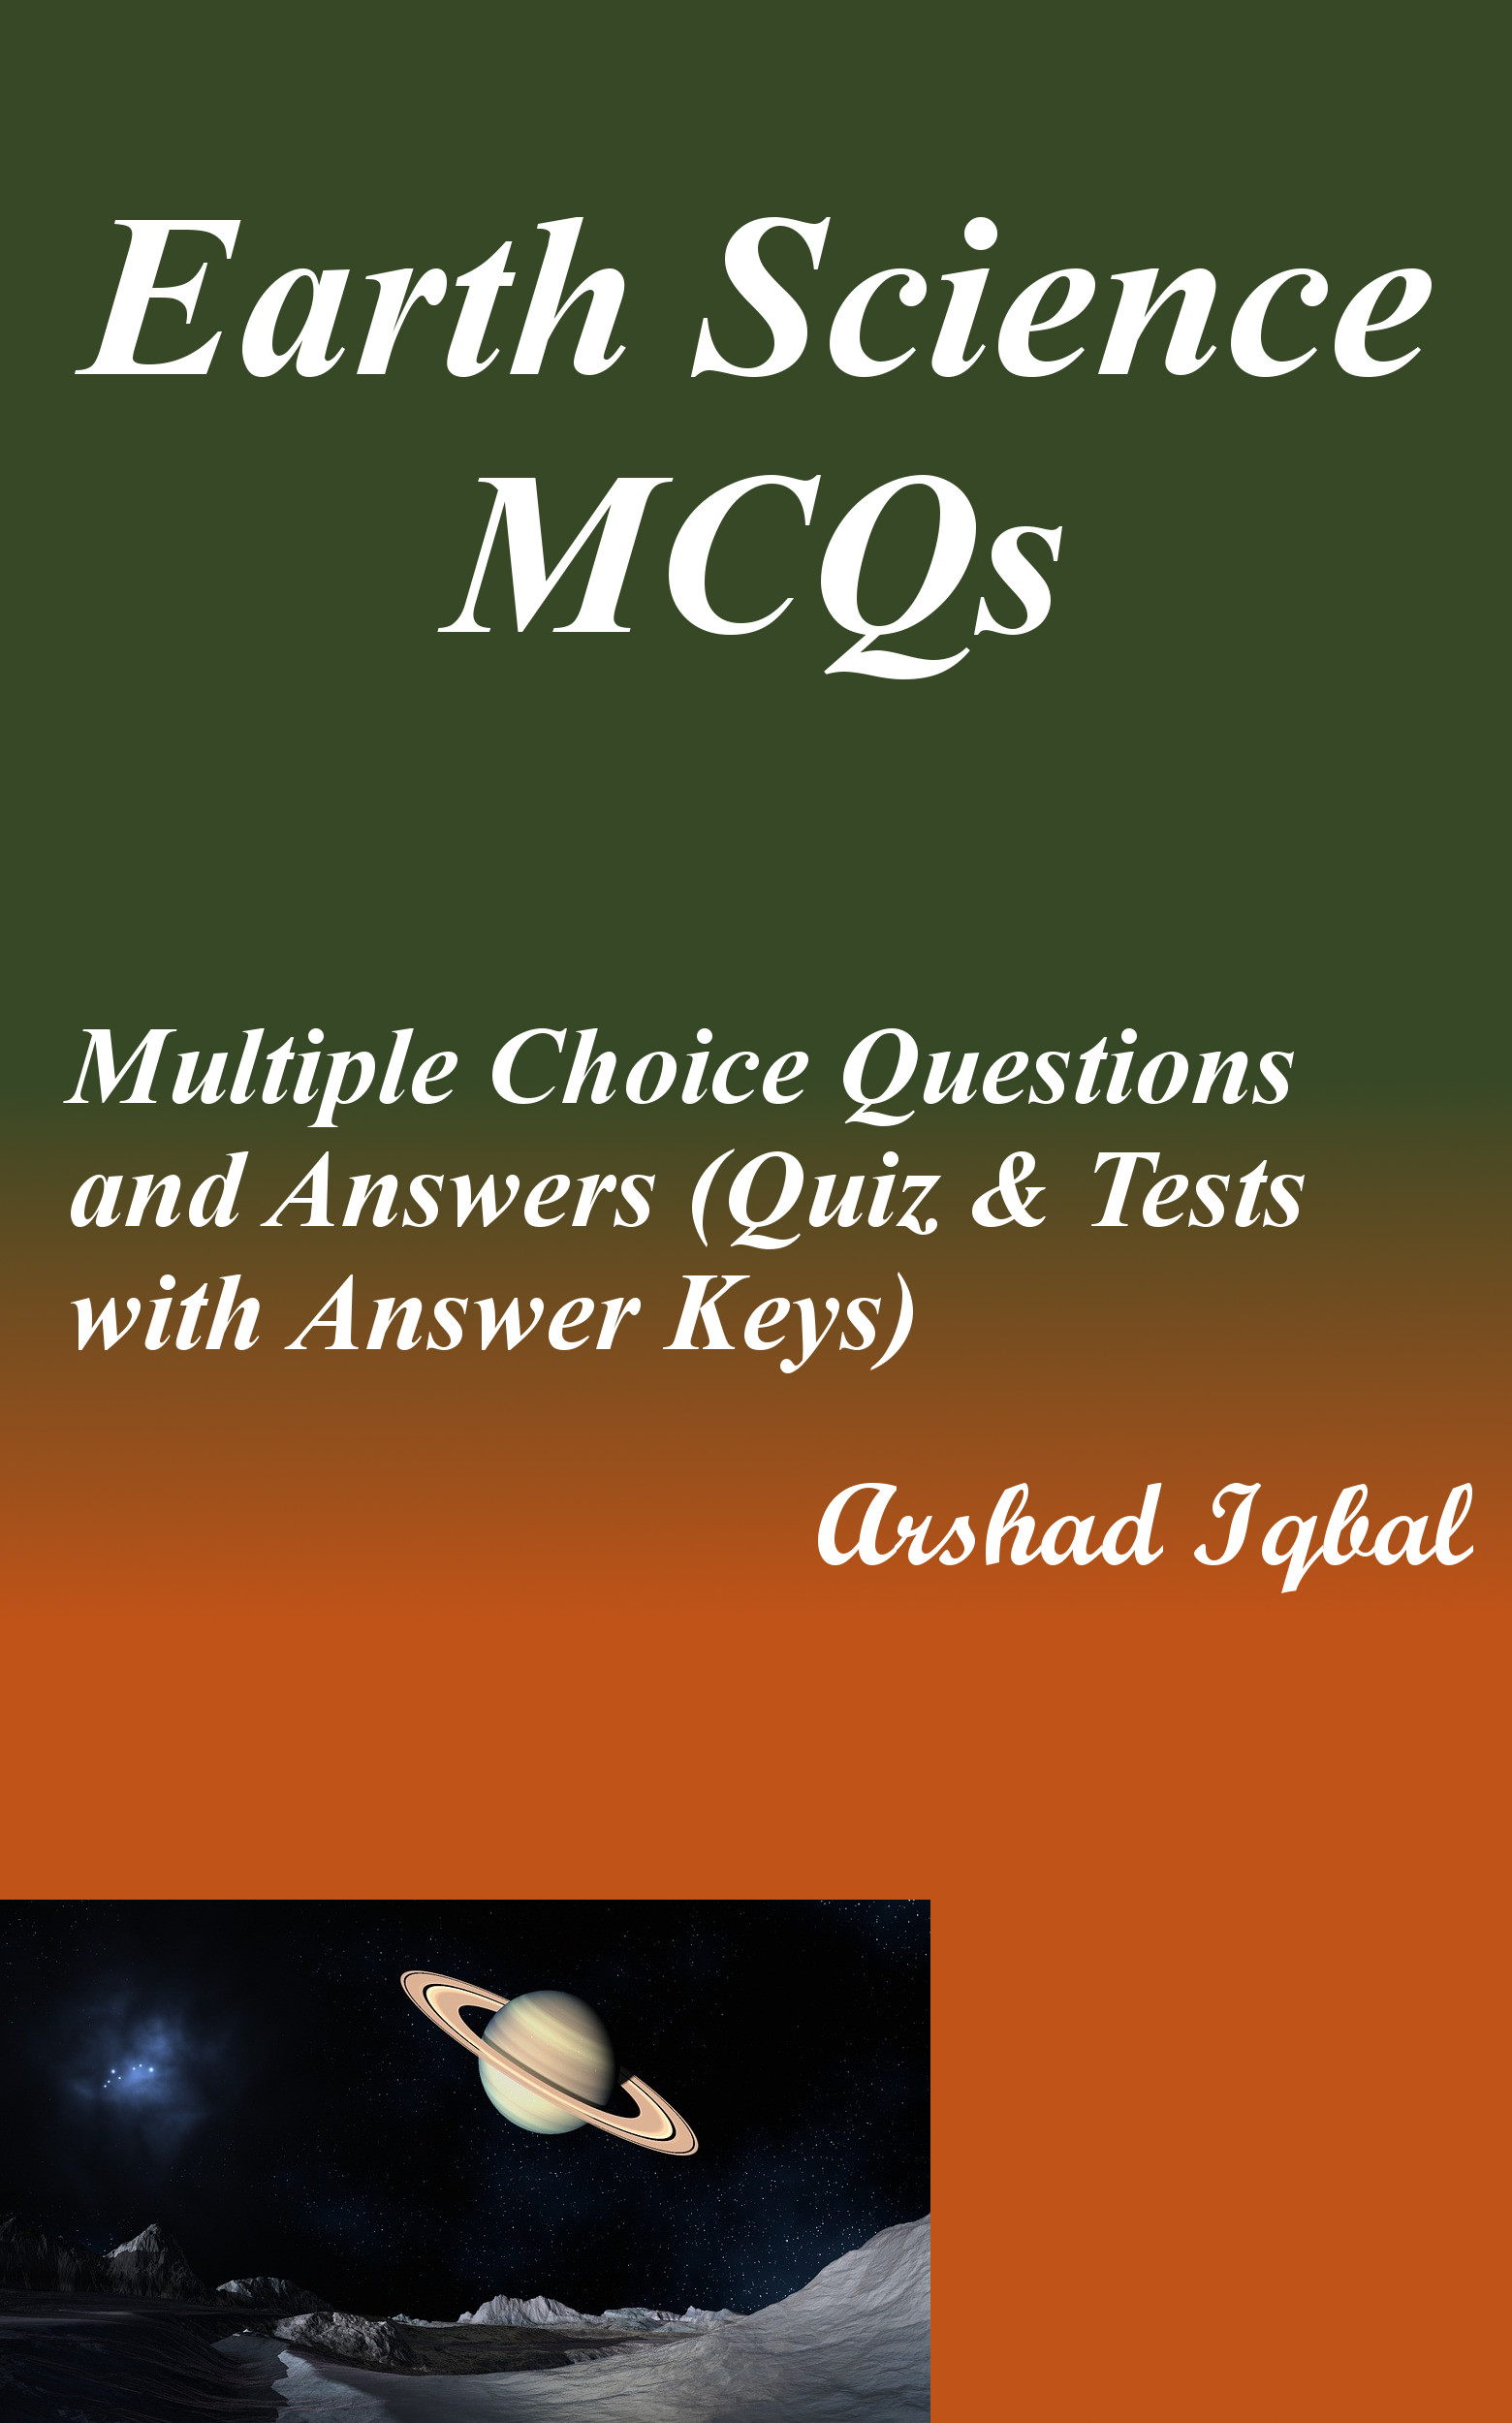 Earth Science MCQs: Multiple Choice Questions and Answers (Quiz & Tests  with Answer Keys), an Ebook by Arshad Iqbal